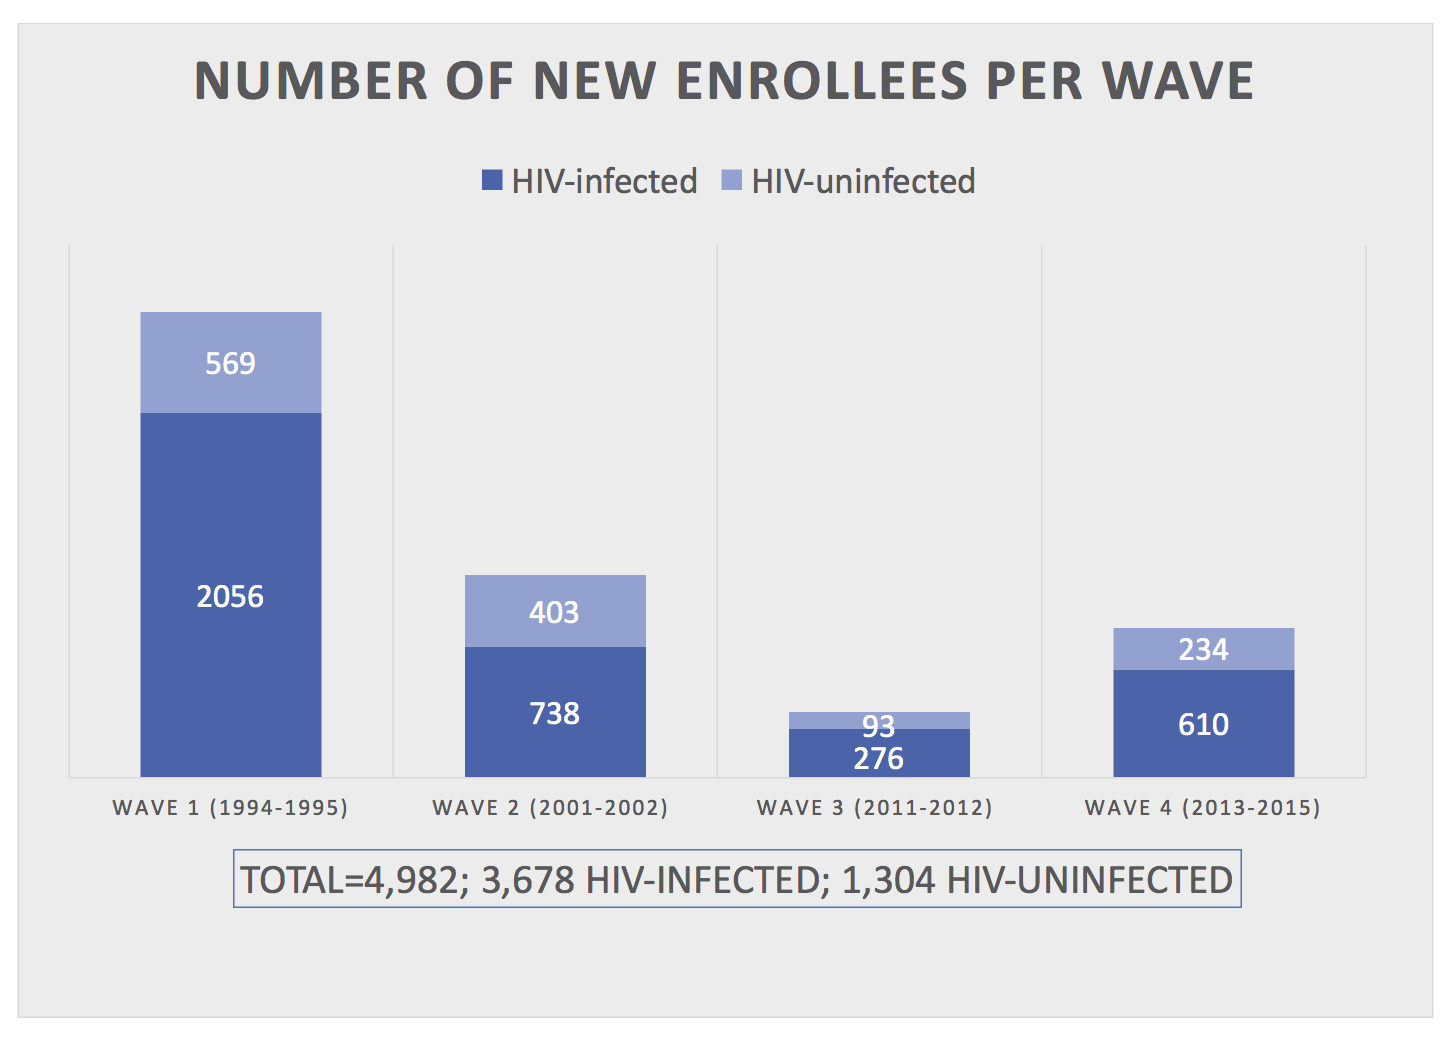 Number of New Enrollees per Wave